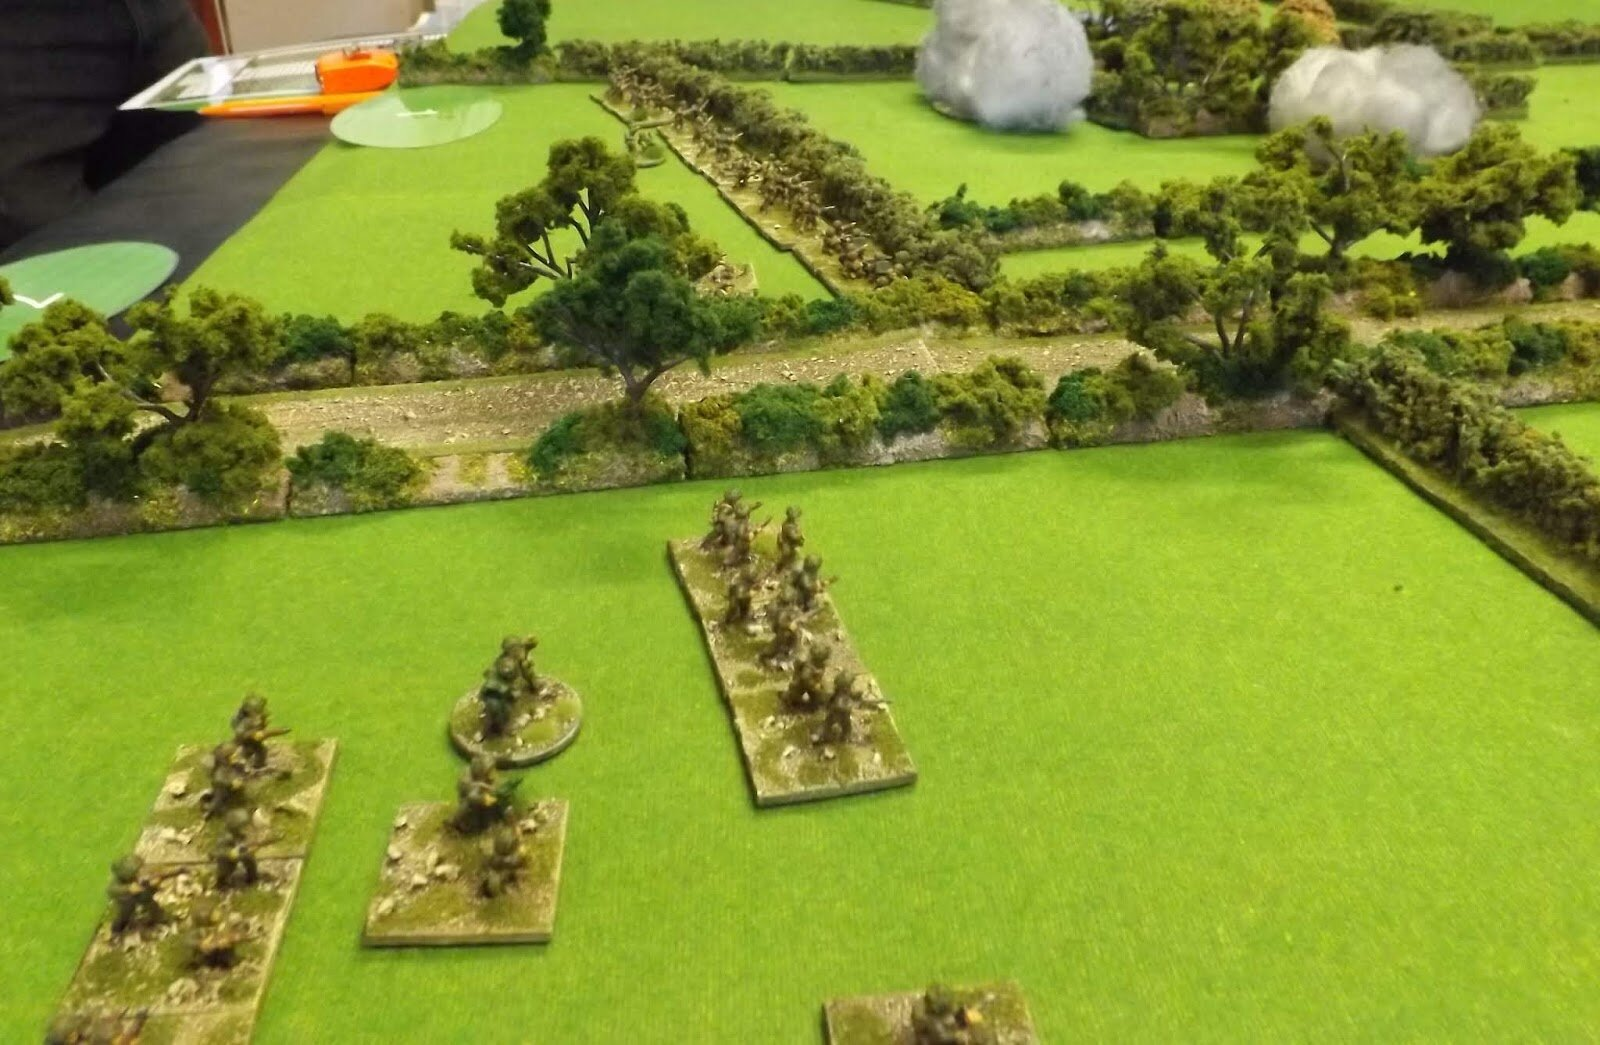 Troops lining hedgerows provide a fire base for those crossing fields trying to find the flank